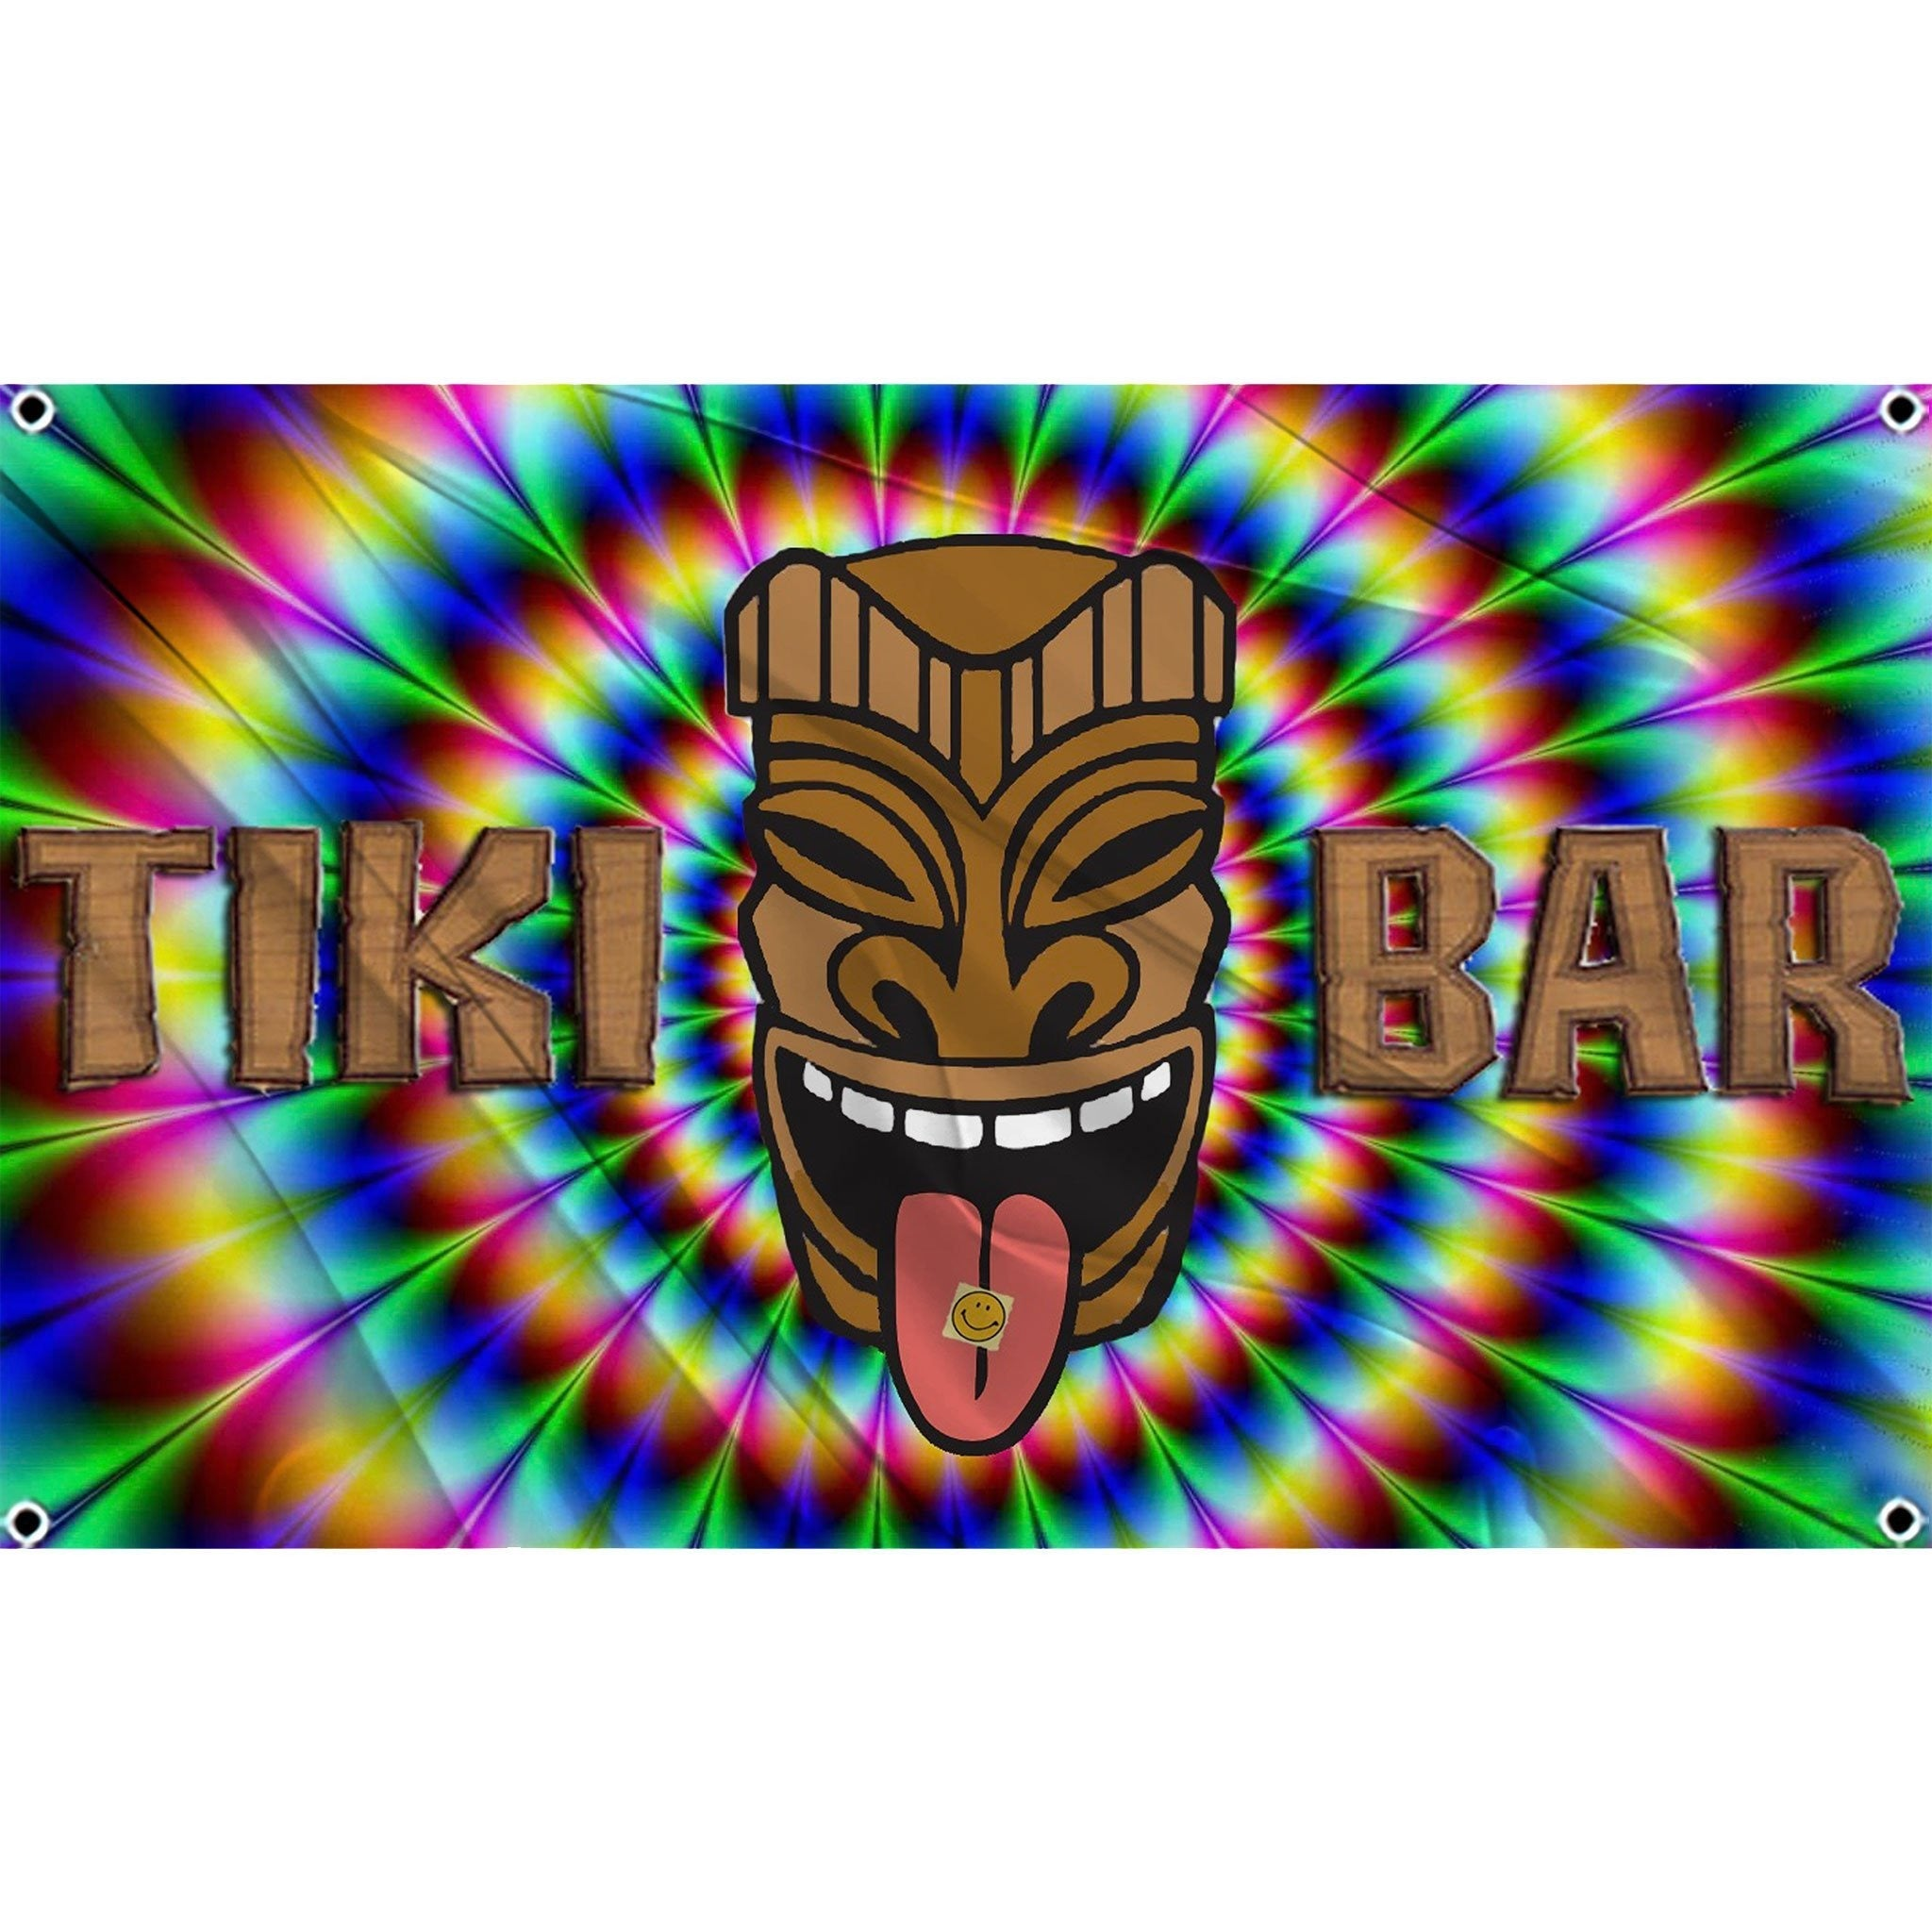 Tiki Bar text in wood patter with rainbow colored psychedelic portal in background